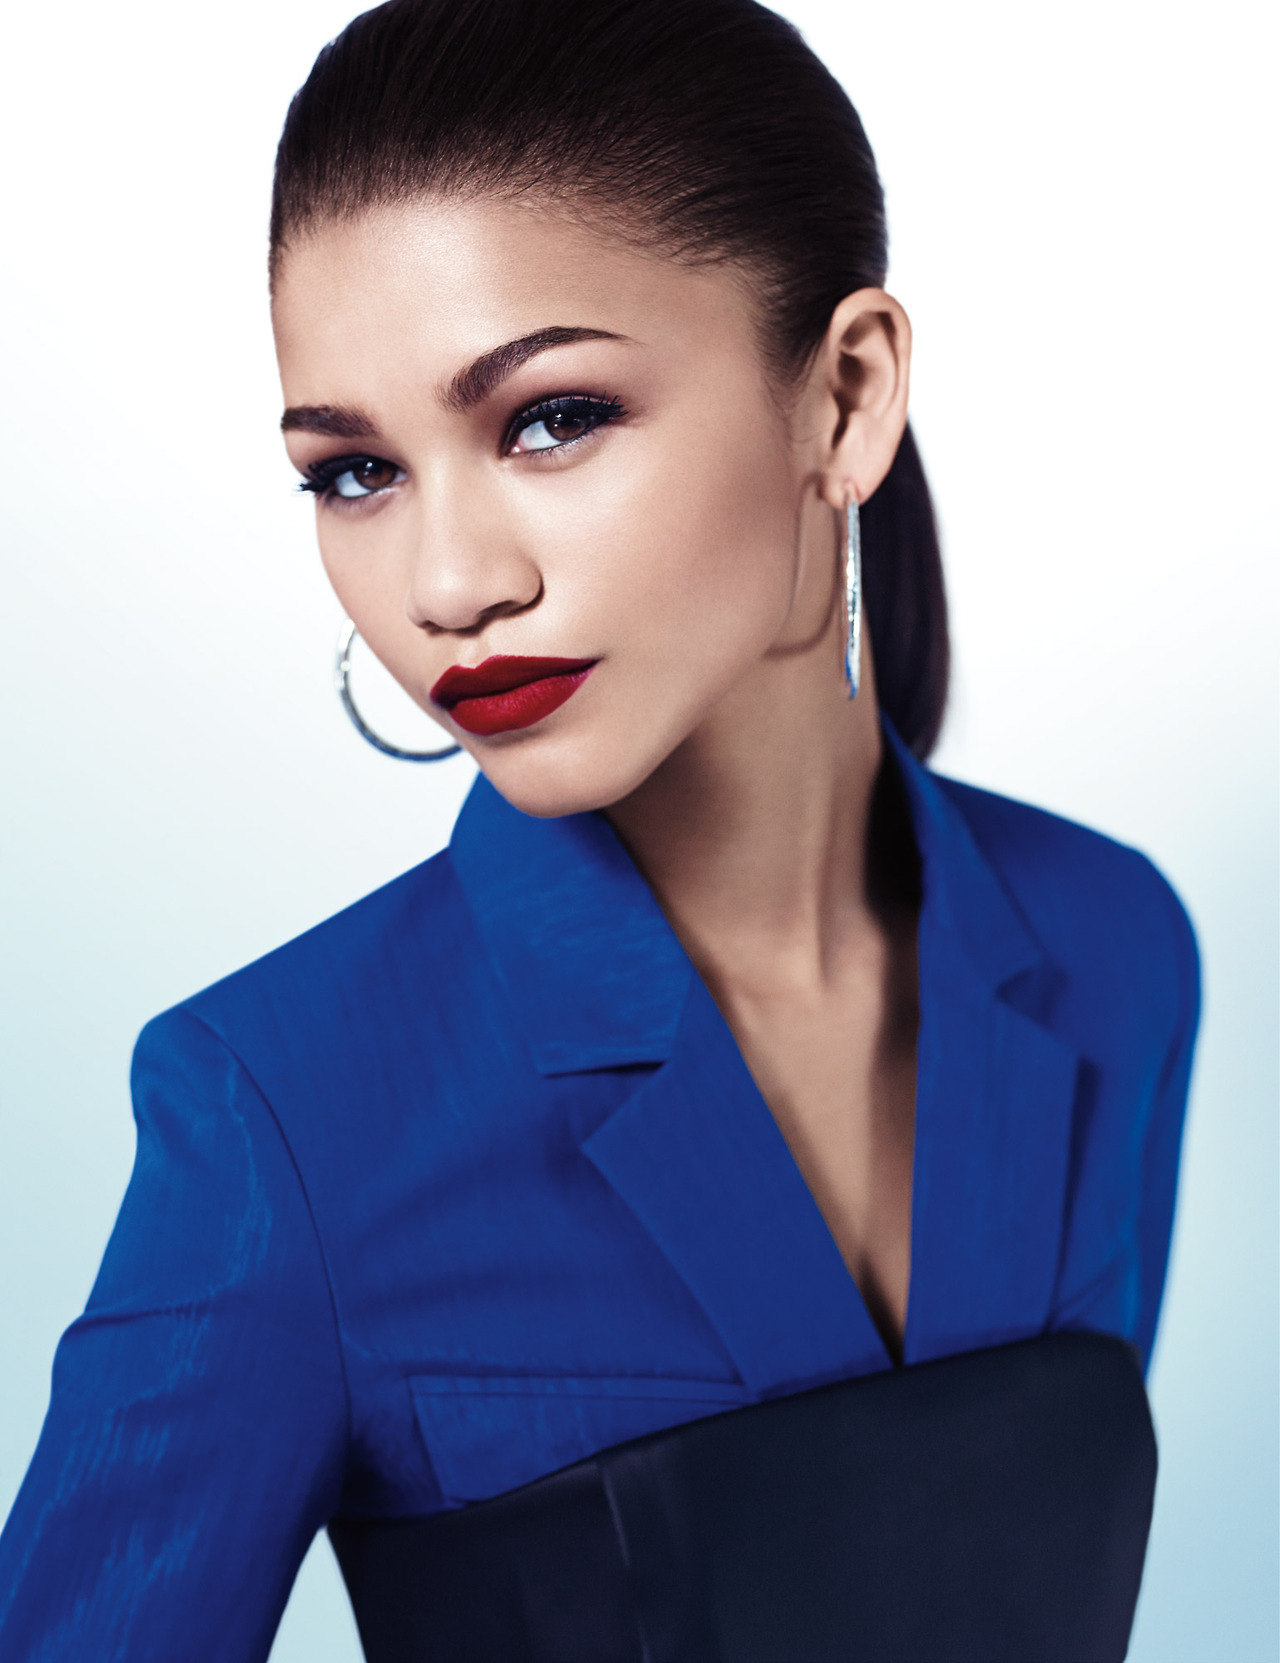 [Update] Zendaya Coleman Opts Out of Aaliyah Movie